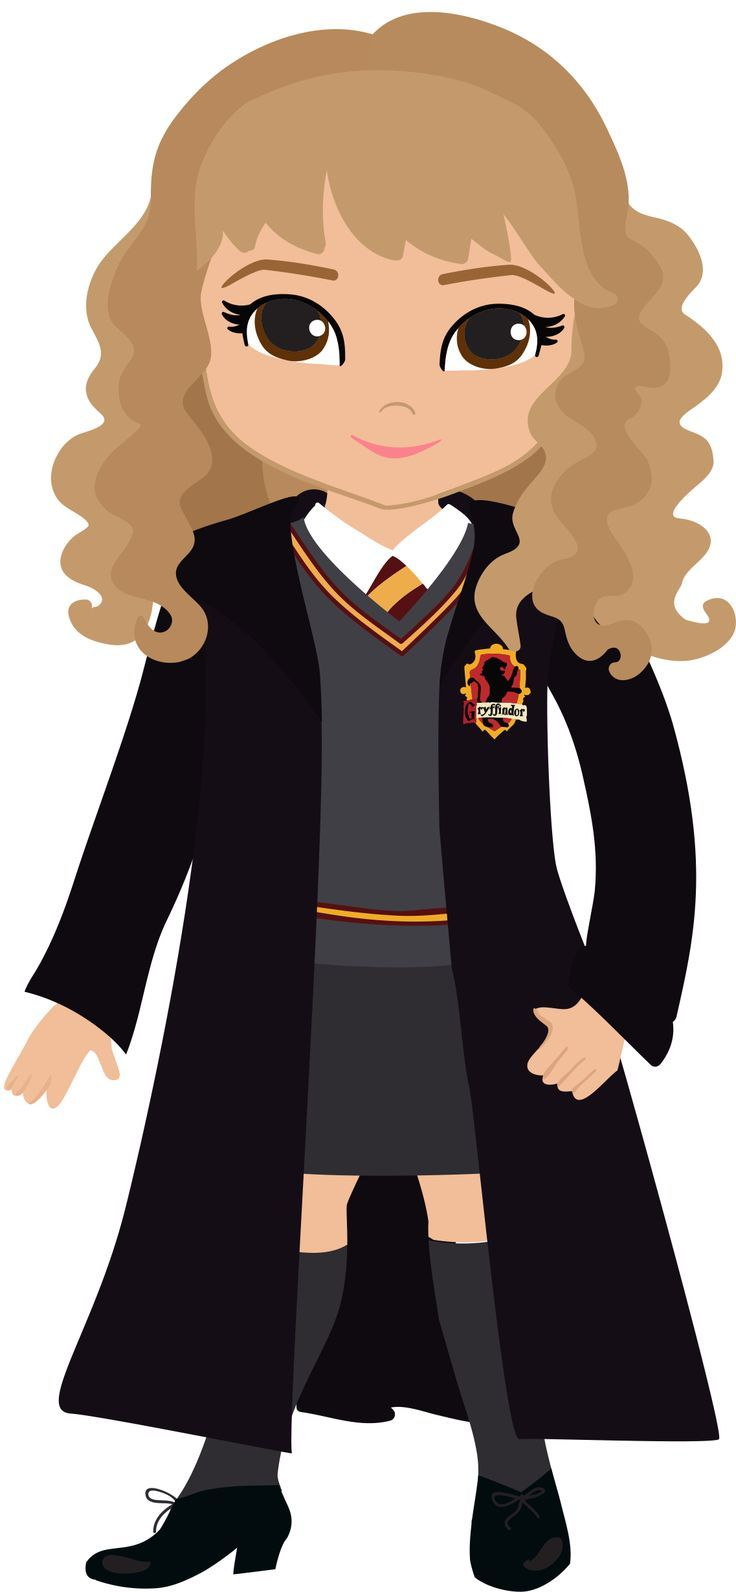 Harry potter robe clipart clipart free Princesas da disney on harry potter clip art and disney 2 | deby in ... clipart free